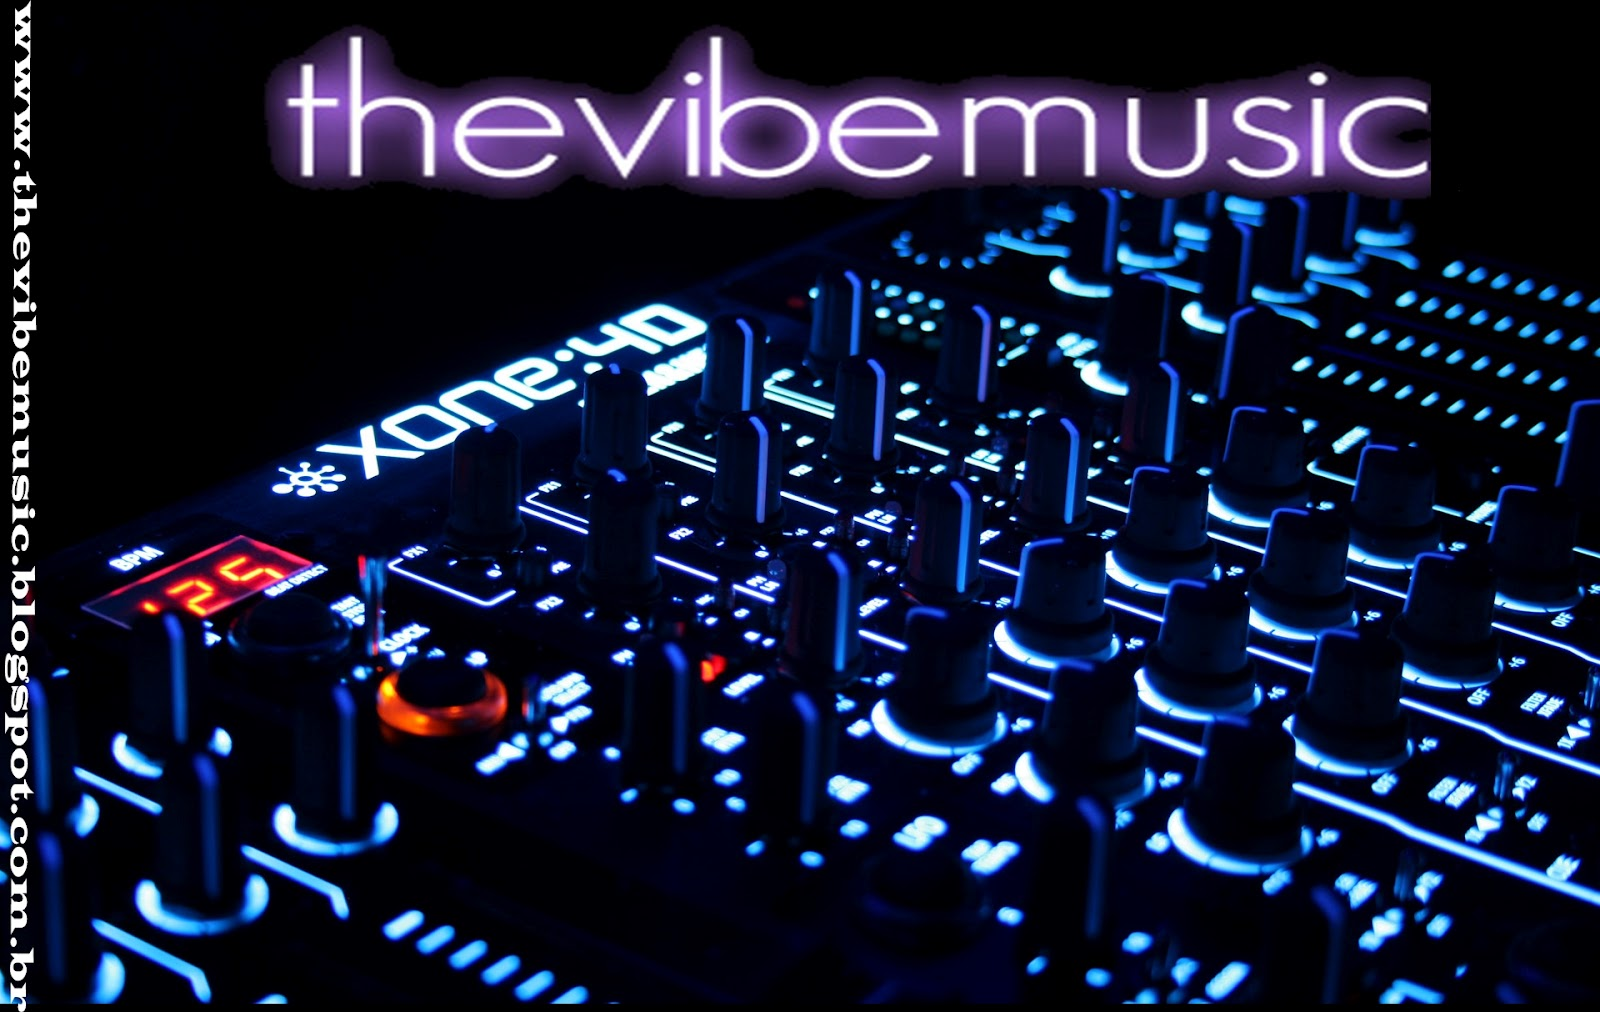 http://2.bp.blogspot.com/-sBTBea17V0k/T9HyHlpnGuI/AAAAAAAAAdo/aIHtuCtNG3c/s1600/dubstep-party-electroupdate-electro-house-moombahcore-532276.jpg